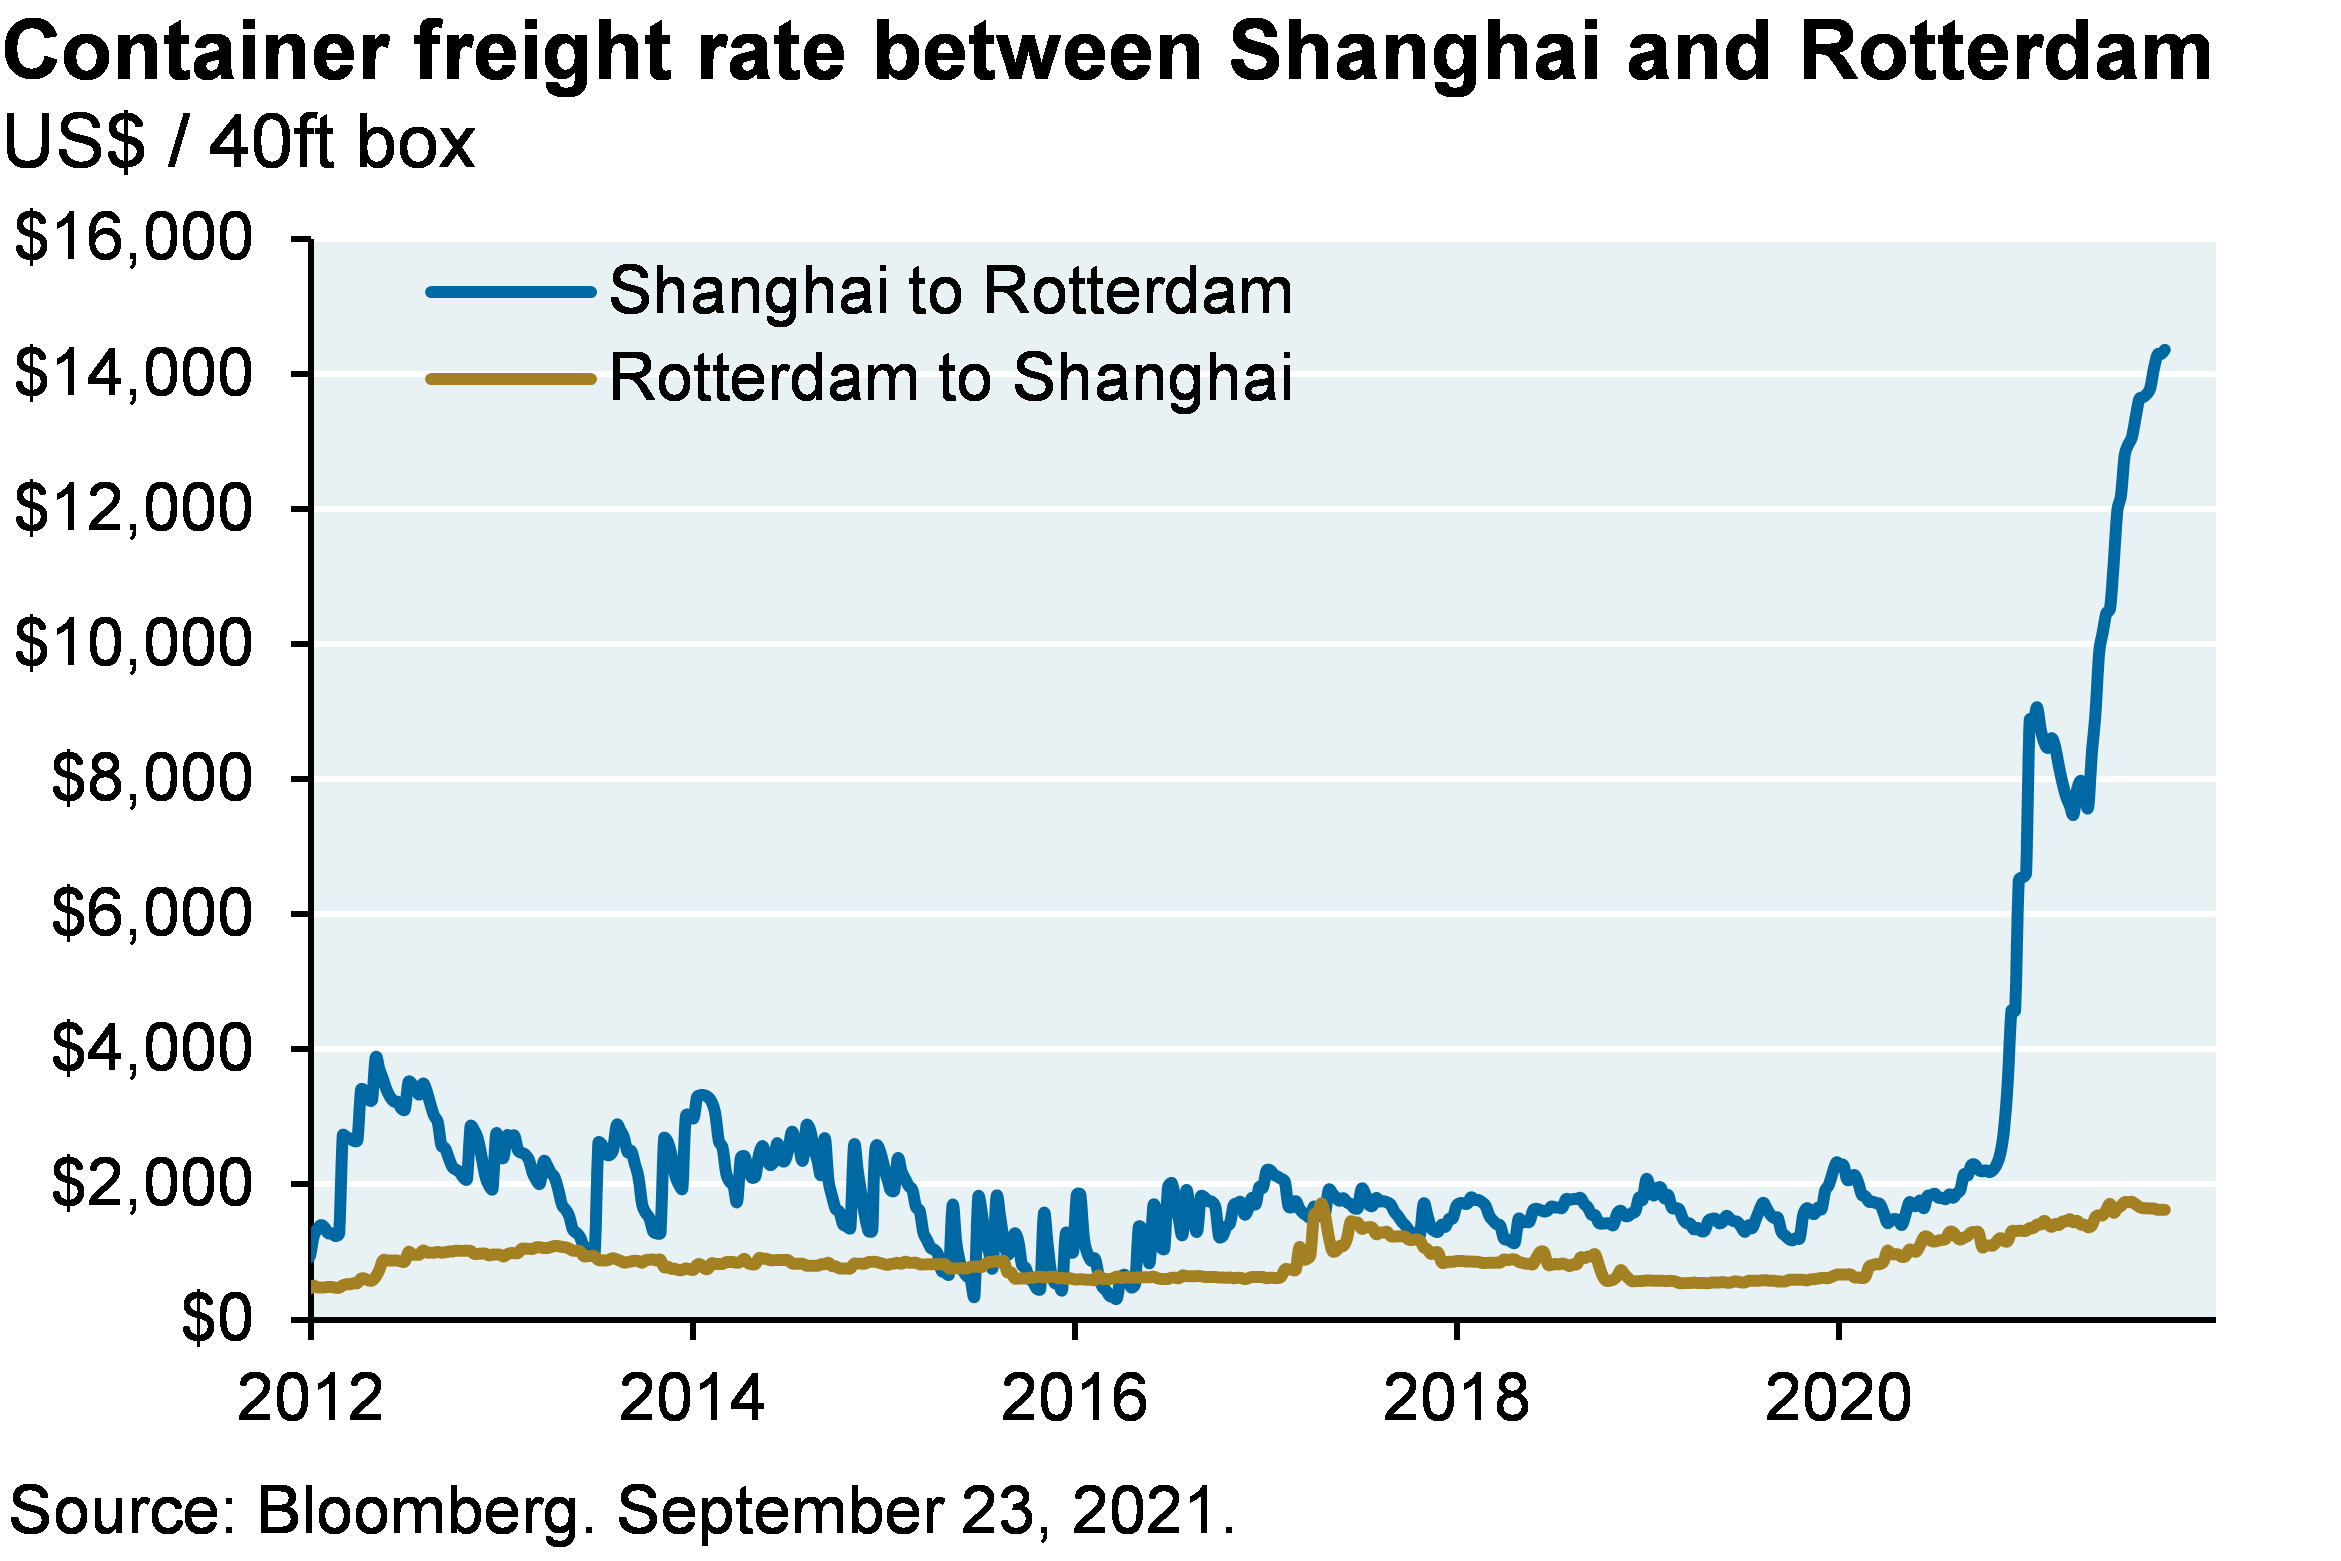 Line chart shows the container freight rate between Shanghai and Rotterdam, shown in US dollars per 40ft box. While the Rotterdam to Shanghai container freight rate has remained steady since 2012 (though with a small recent uptick), the Shanghai to Rotterdam freight rate has spiked from a normal value of around $2,000 to a most recent peak of over $14,000 per 40ft box.